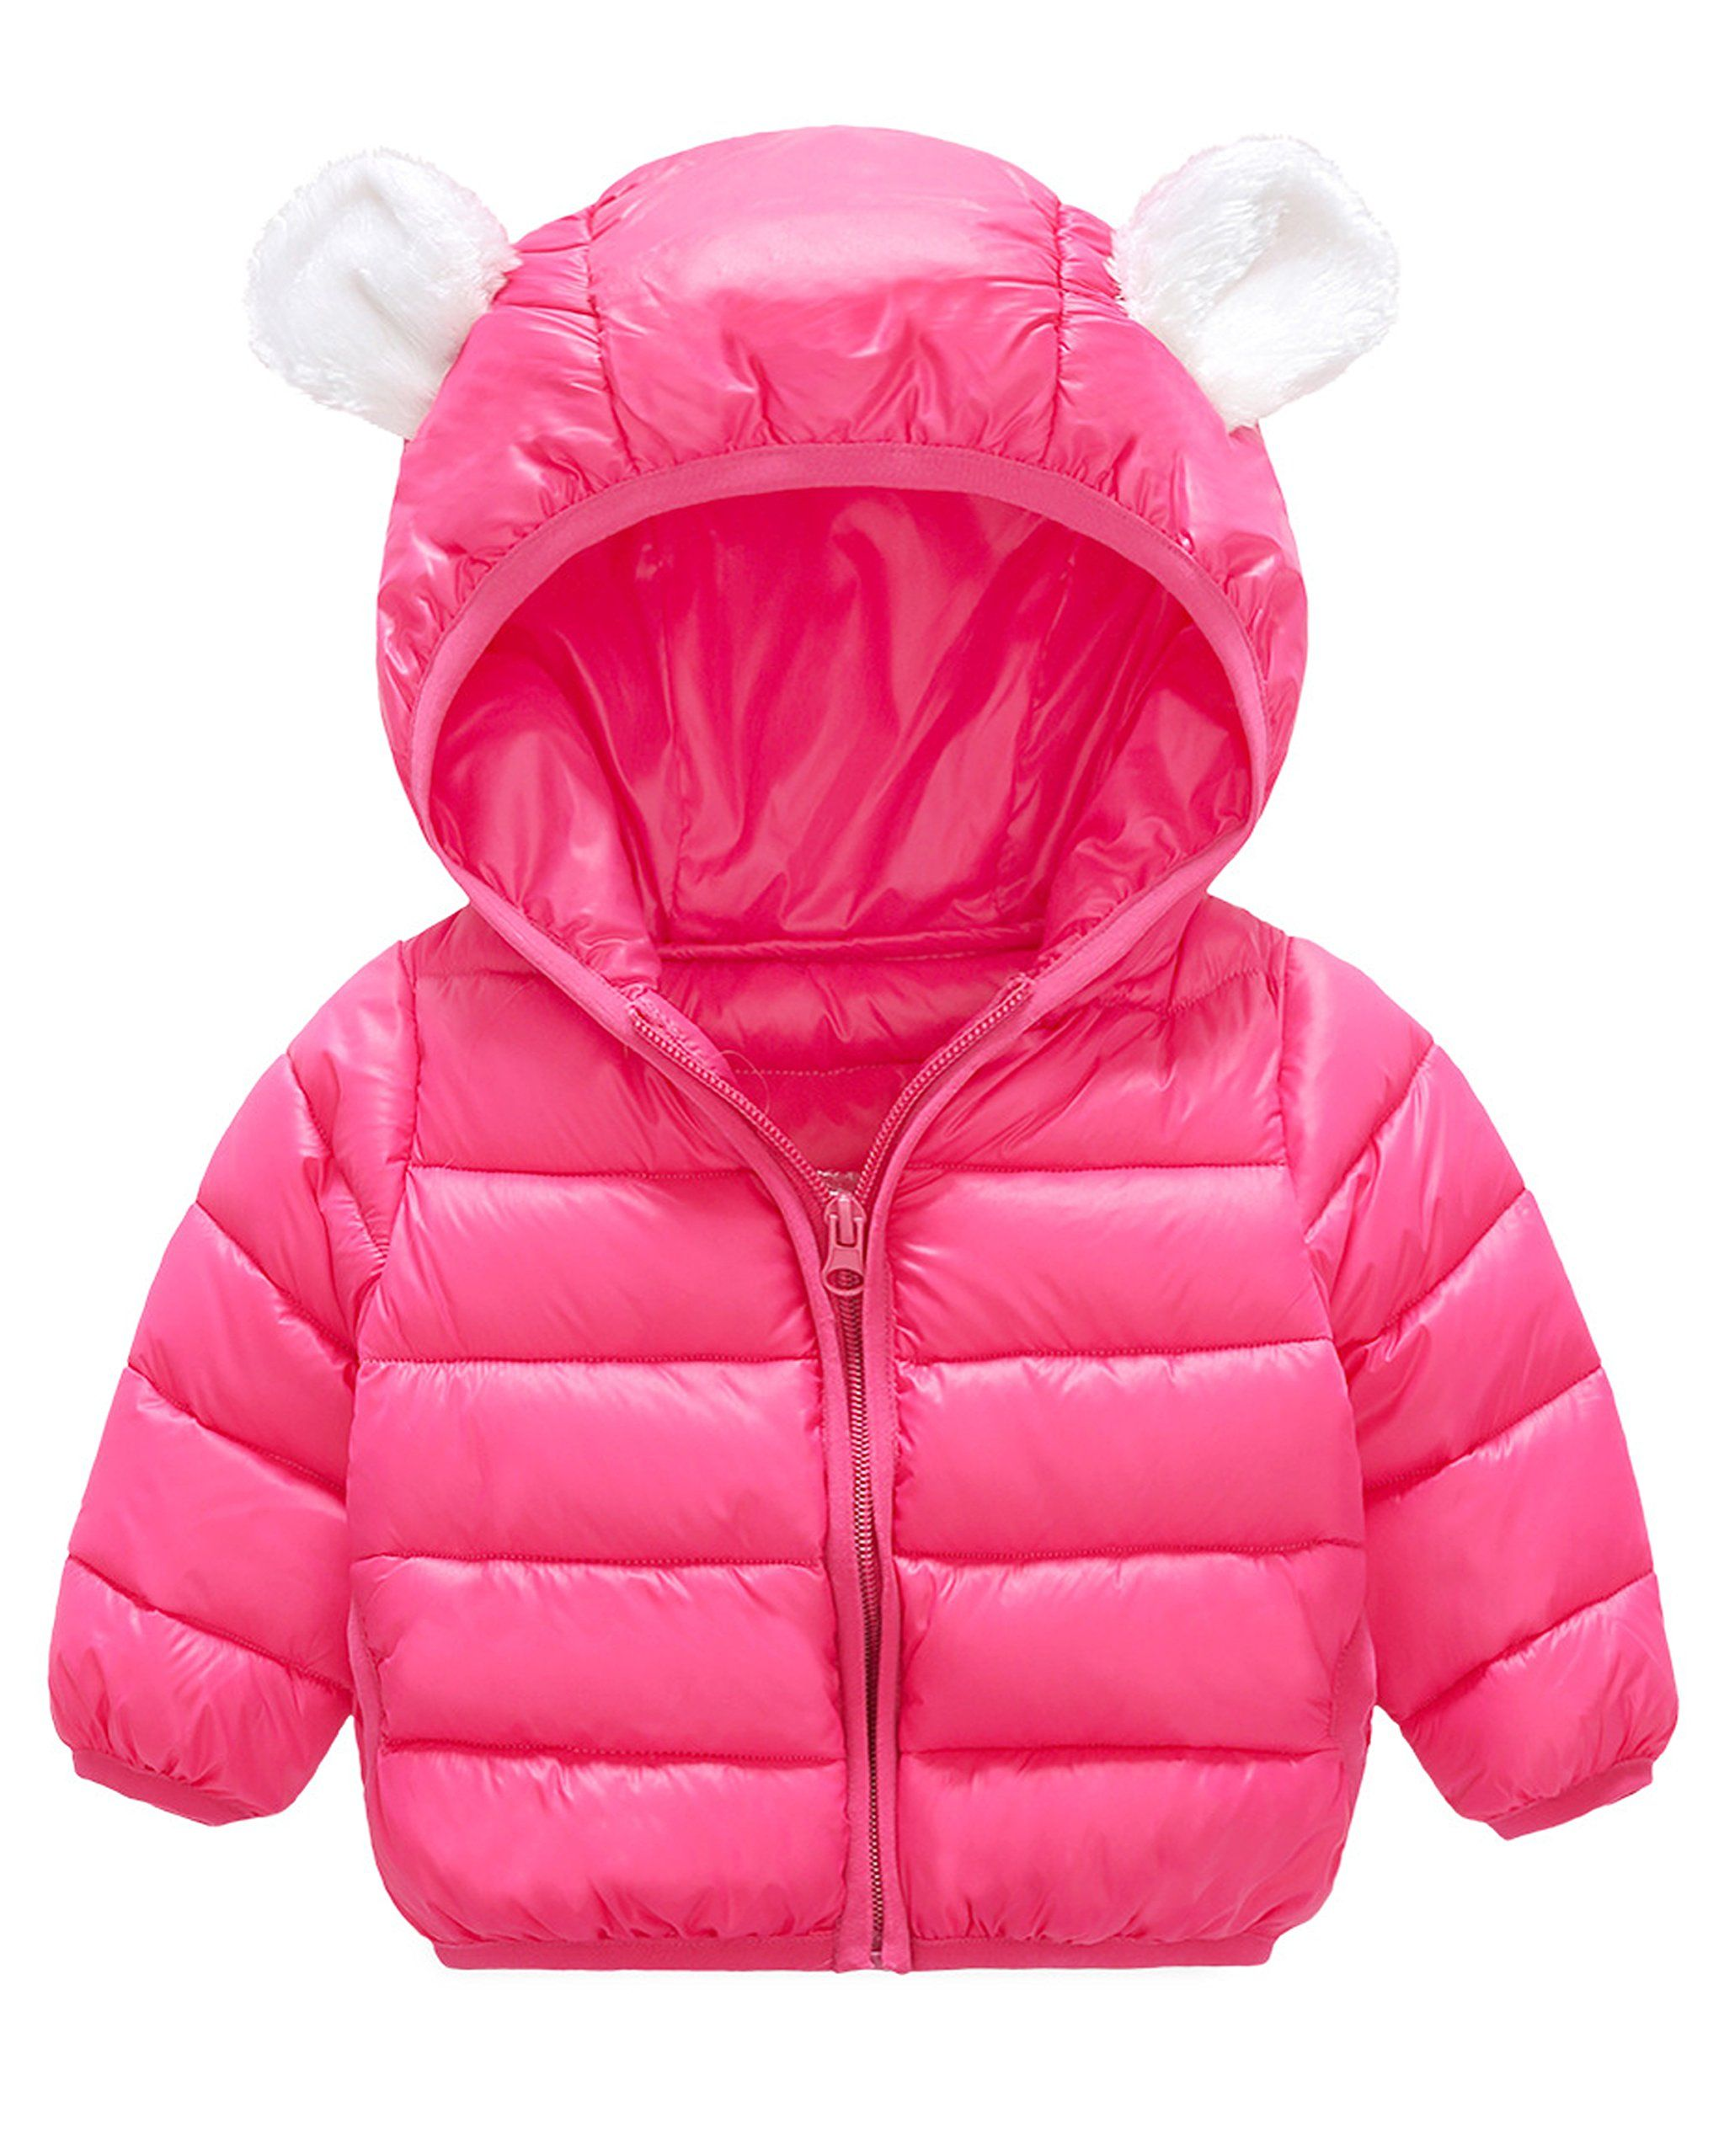 Aiffel Baby Boys Girls Cotton Small Ear Hooded Coats Kids Winter Warm Down Hooded Thicken Jacket Outerwear Size 70cm 0 6 Girl Snowsuit Kids Coats Baby Hoodie